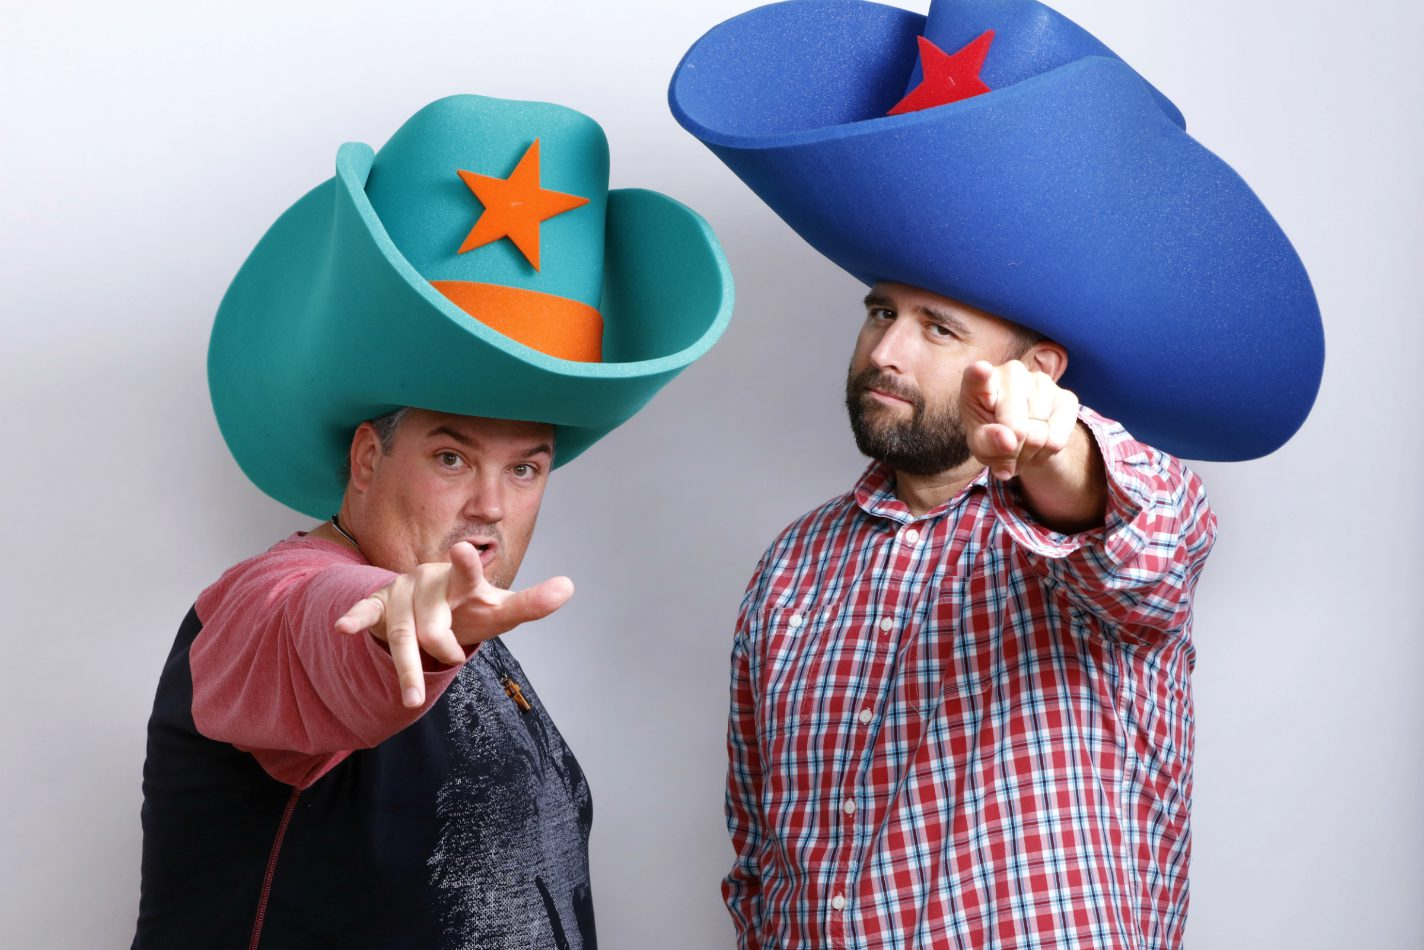 what has 2 giant foam cowboy hats and points at things   9c99c3f1178